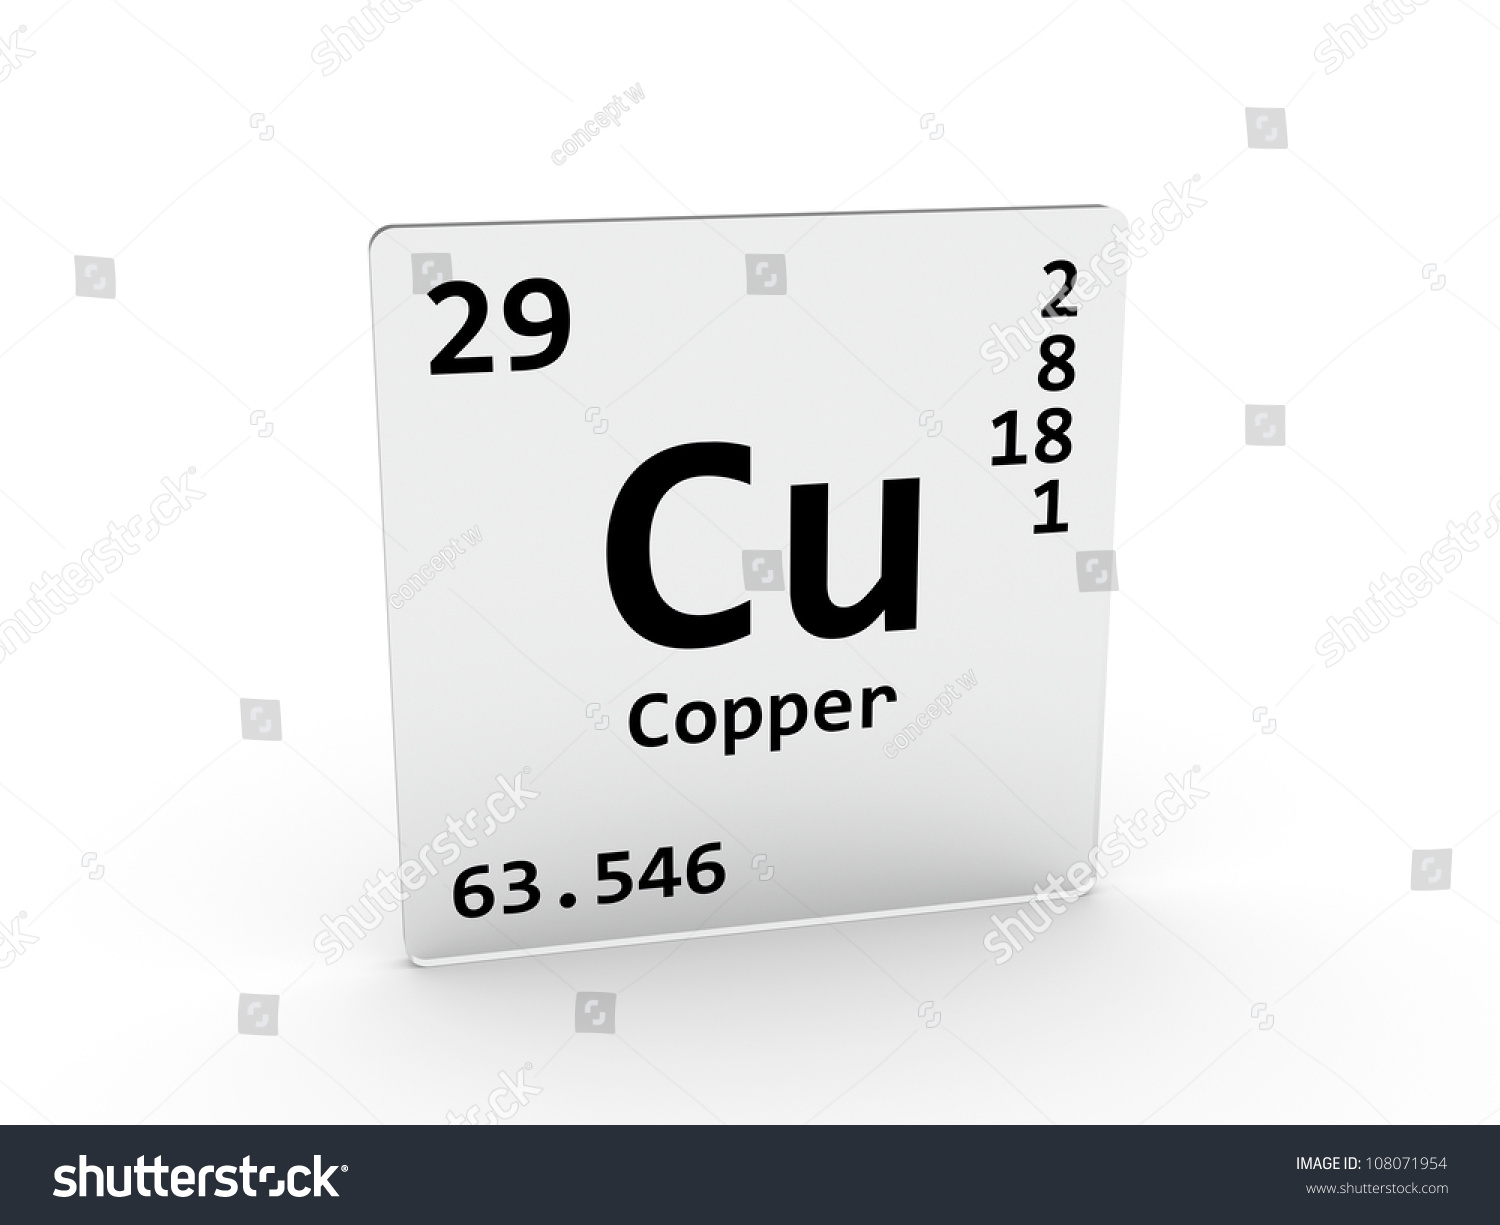 Copper symbol cu element periodic table stock illustration copper symbol cu element of the periodic table gamestrikefo Images